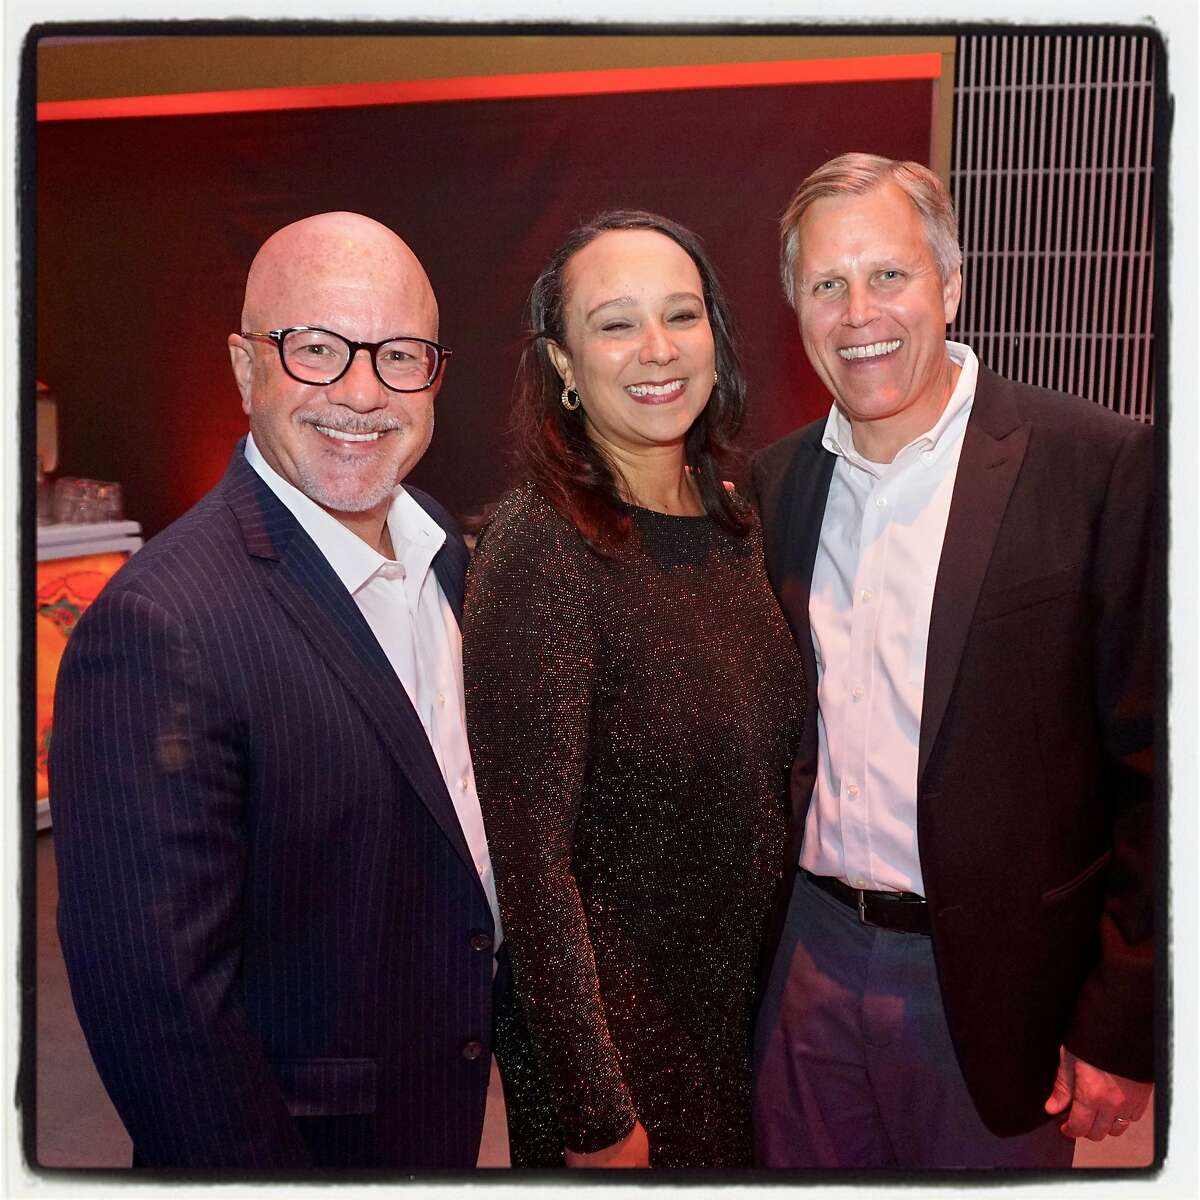 Steve Kawa (left) with SF City Administrator Naomi Kelly and his husband, Dan Henkle, at YBCA's This is Not a Gala. March 30, 2019.